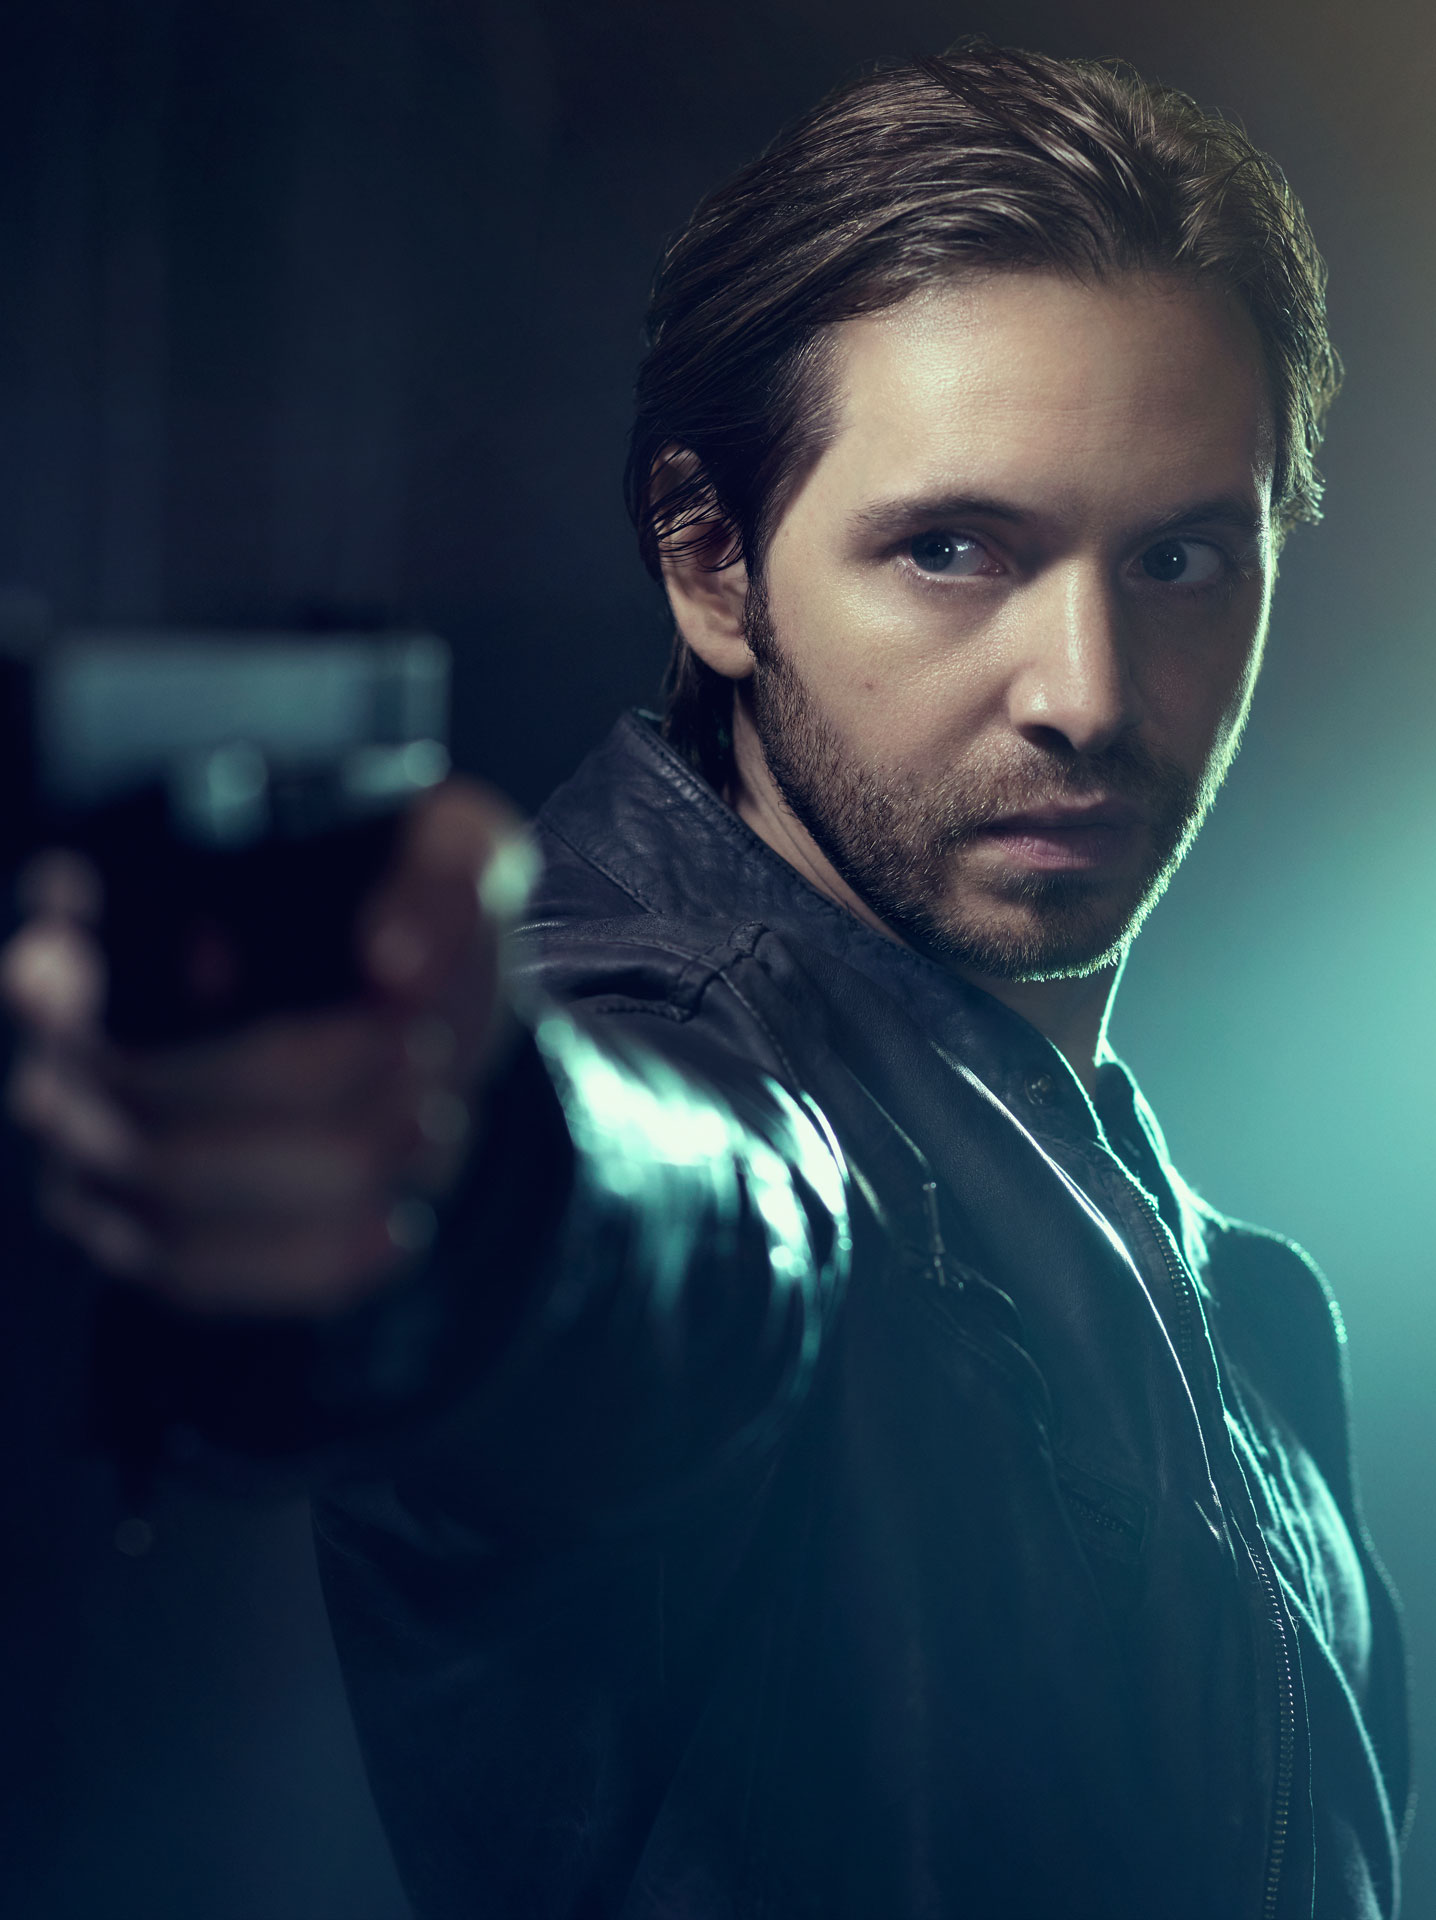 aaron stanford james cole � cast 12 monkeys syfy